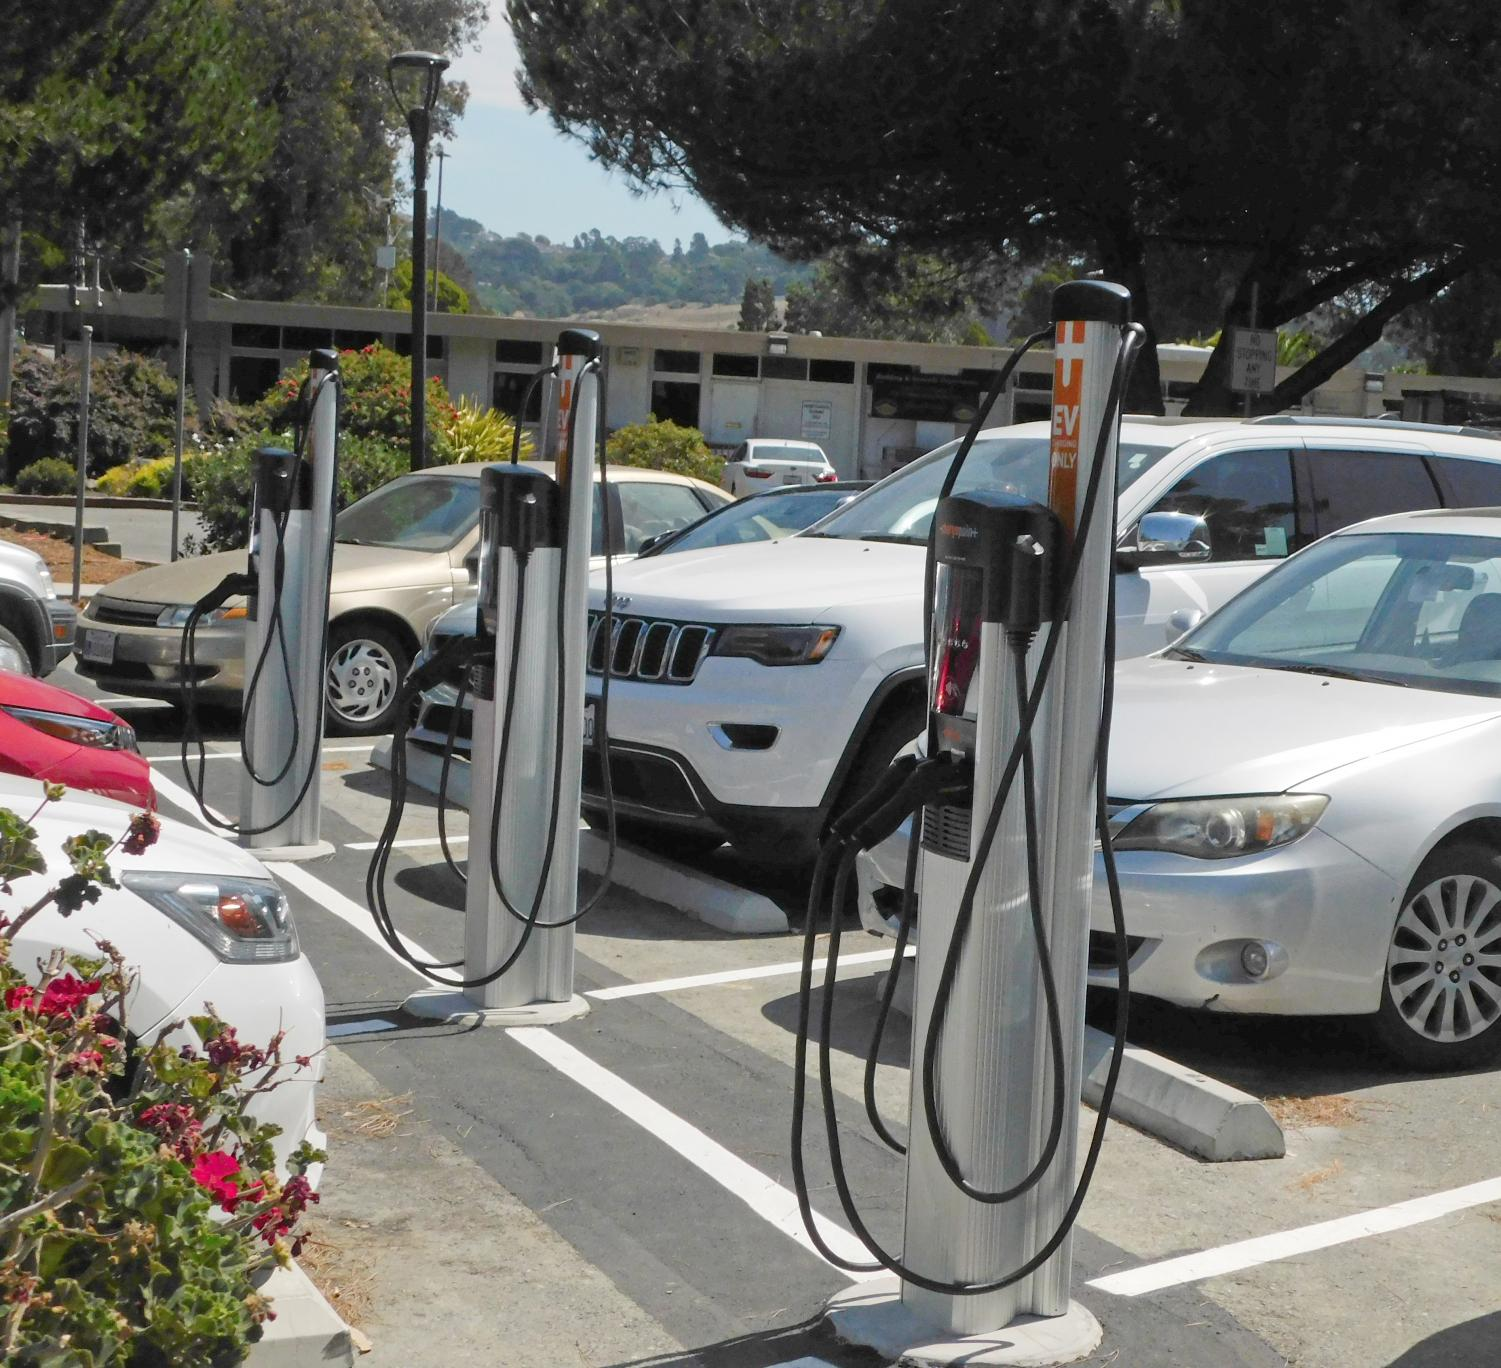 Six electric car charging stations were installed during the summer in Lot 9.